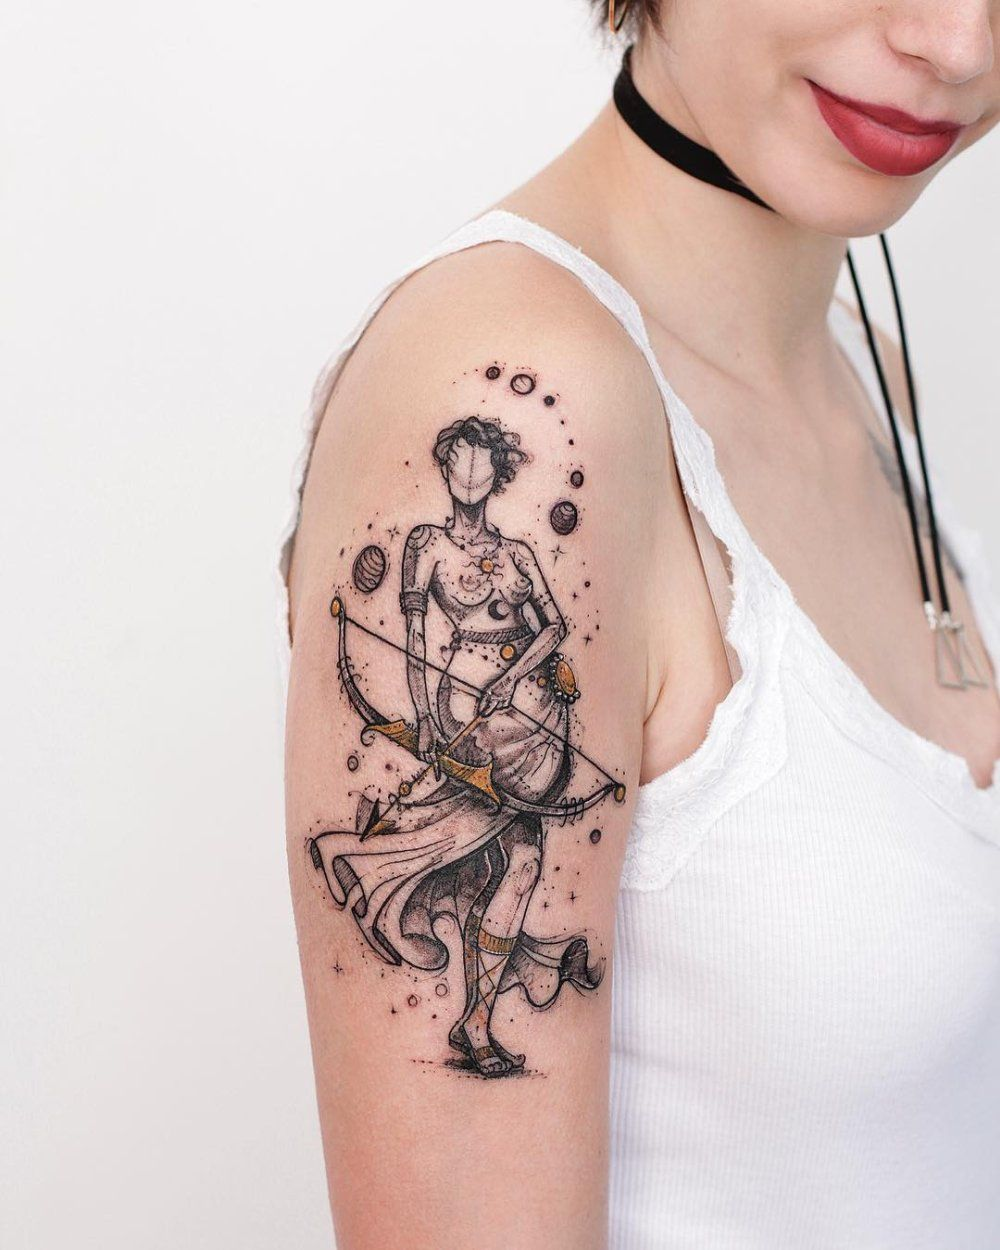 Illustrative tattoos with a lot of heart